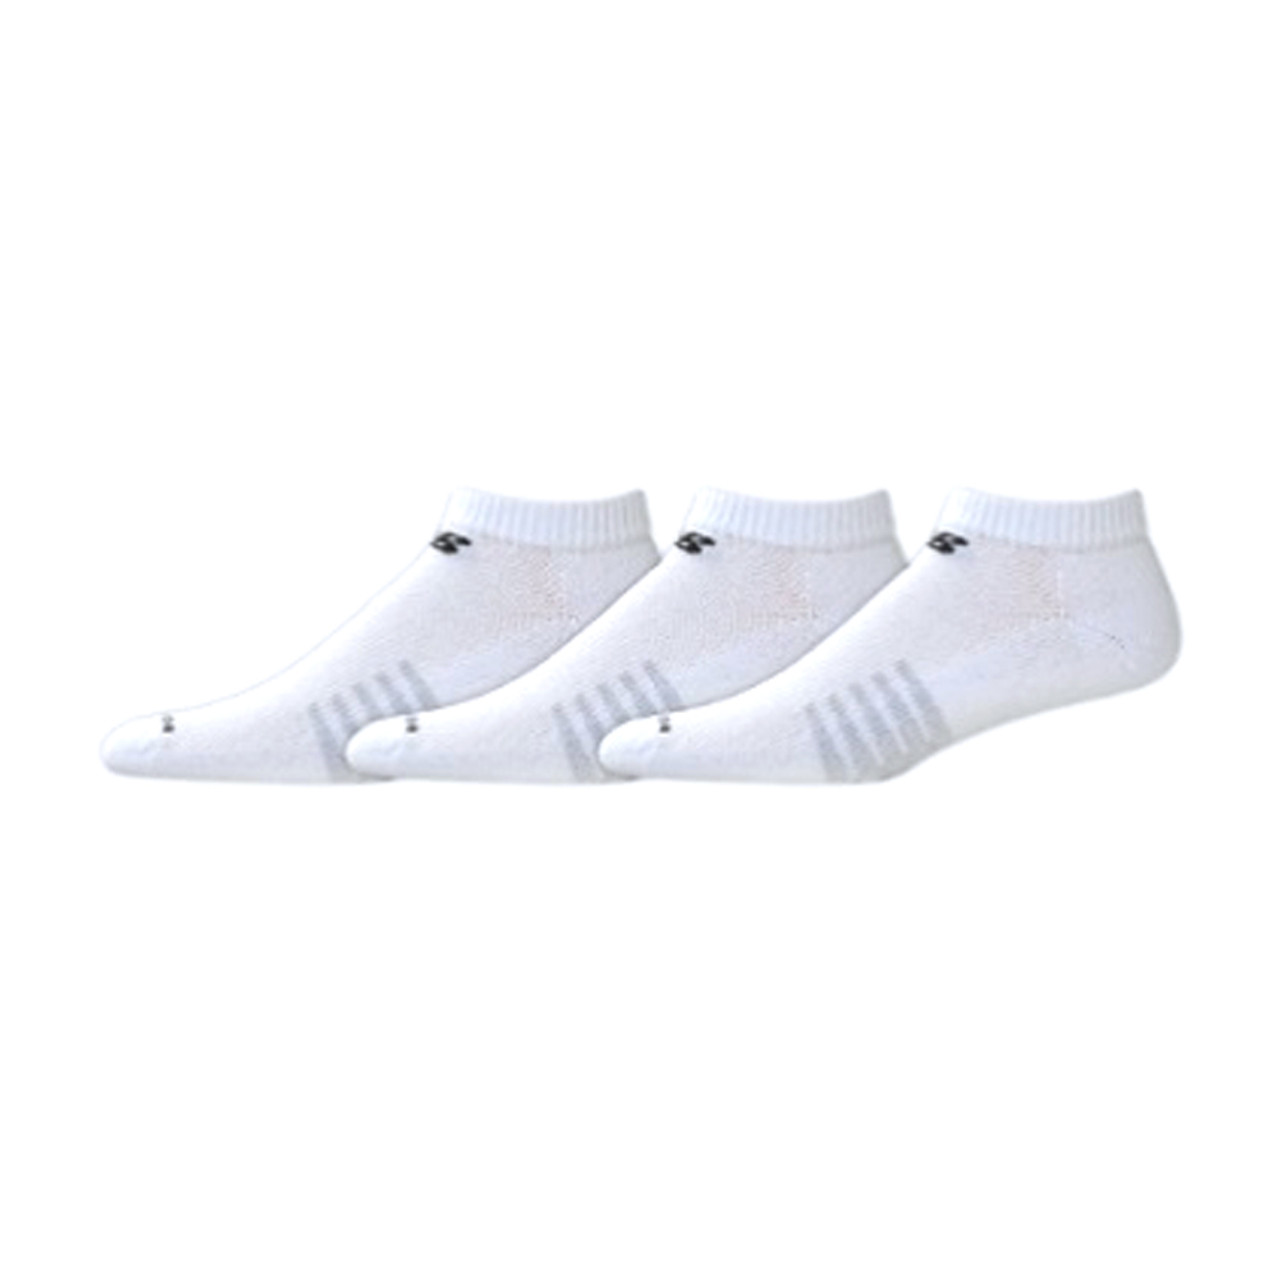 8b509fca93f47 New Balance Men's 3 Pack Performance Cotton Low Cut Socks White - Shop now  @ Shoolu